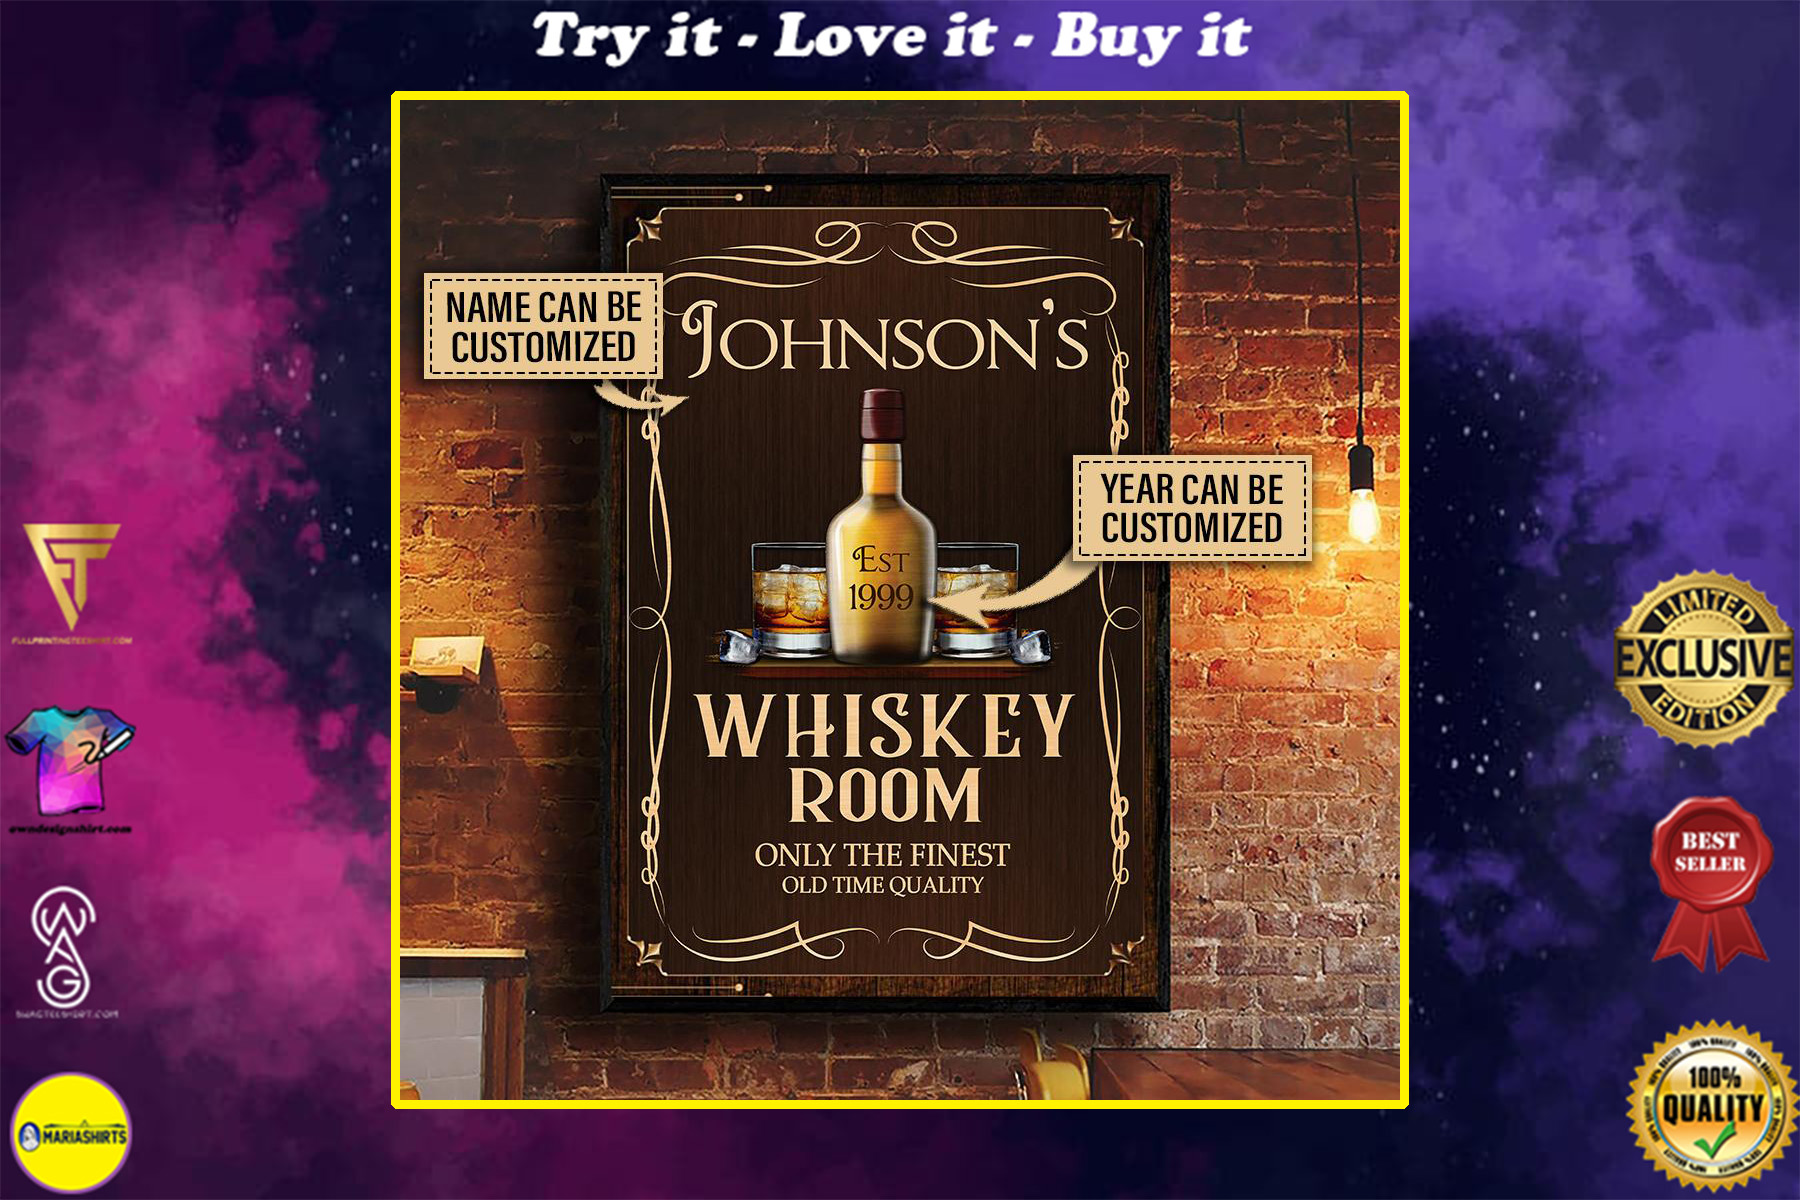 custom name whiskey room only the finest old time quality vintage poster